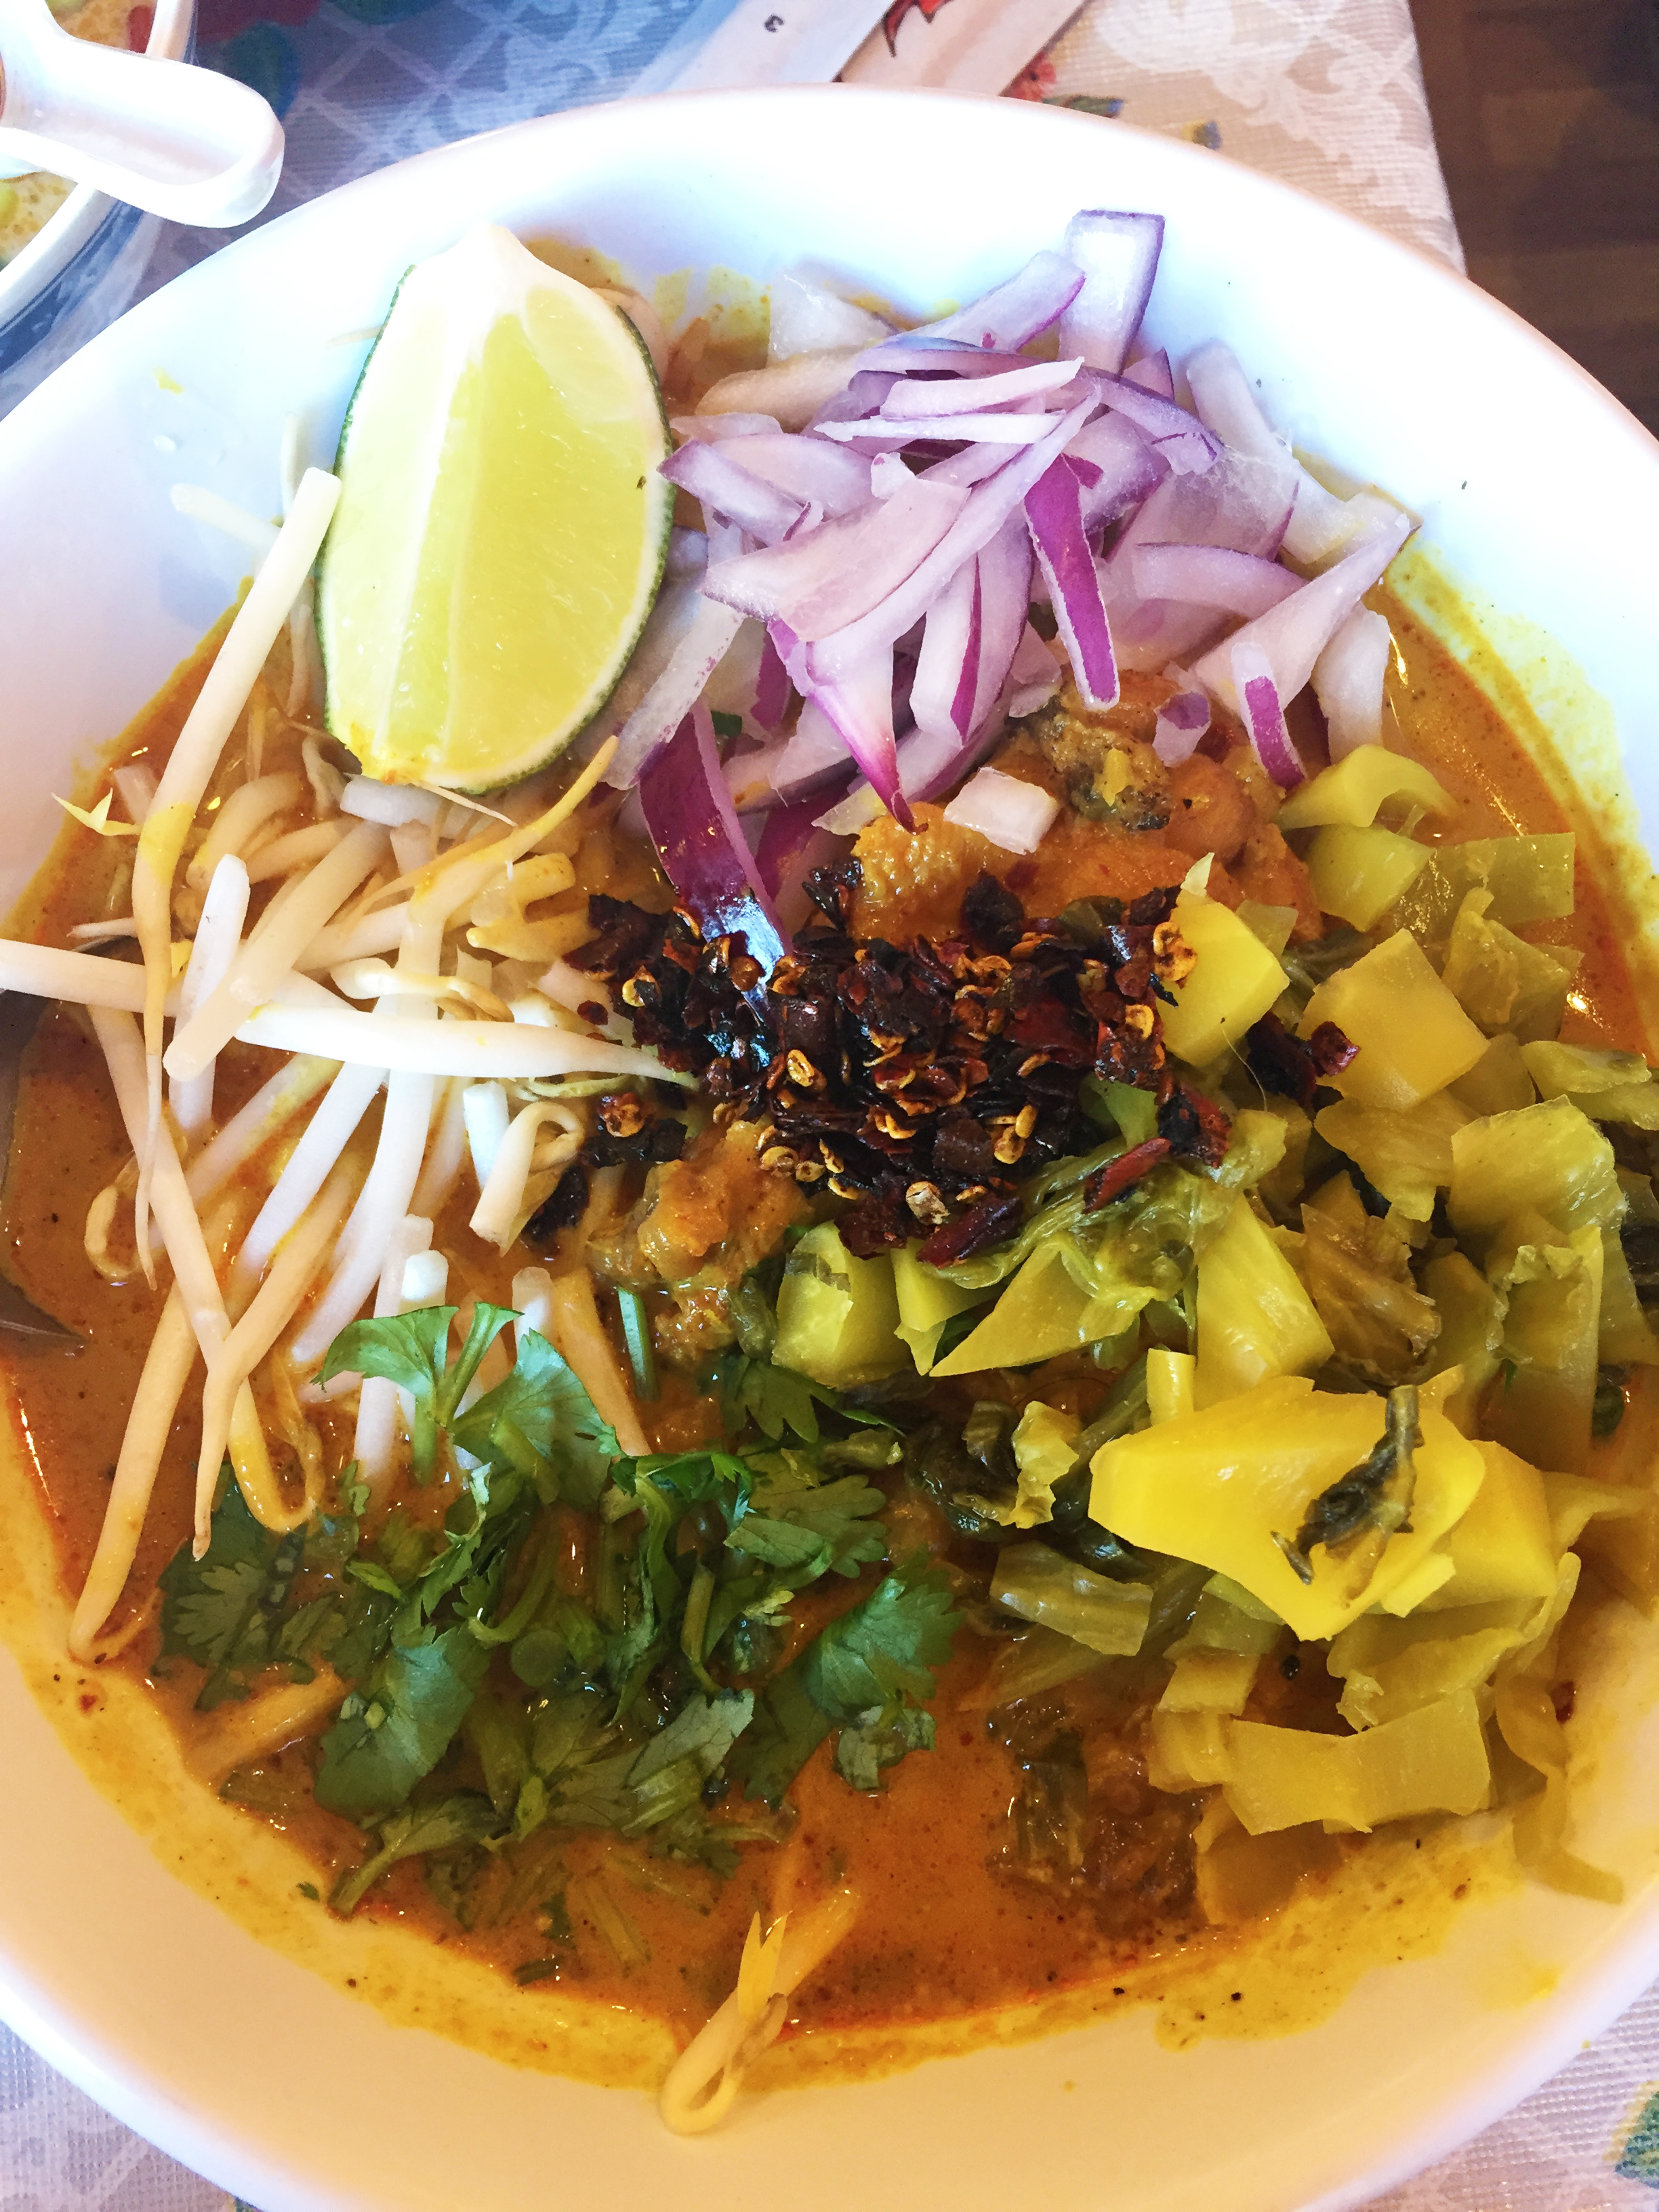 Khao Soi Gai -mae sai curried noodles withchicken andhomemade nam prik khao soi,topped withbean sprouts, red onion, pickled mustard greens, cilantro, andchile jam.